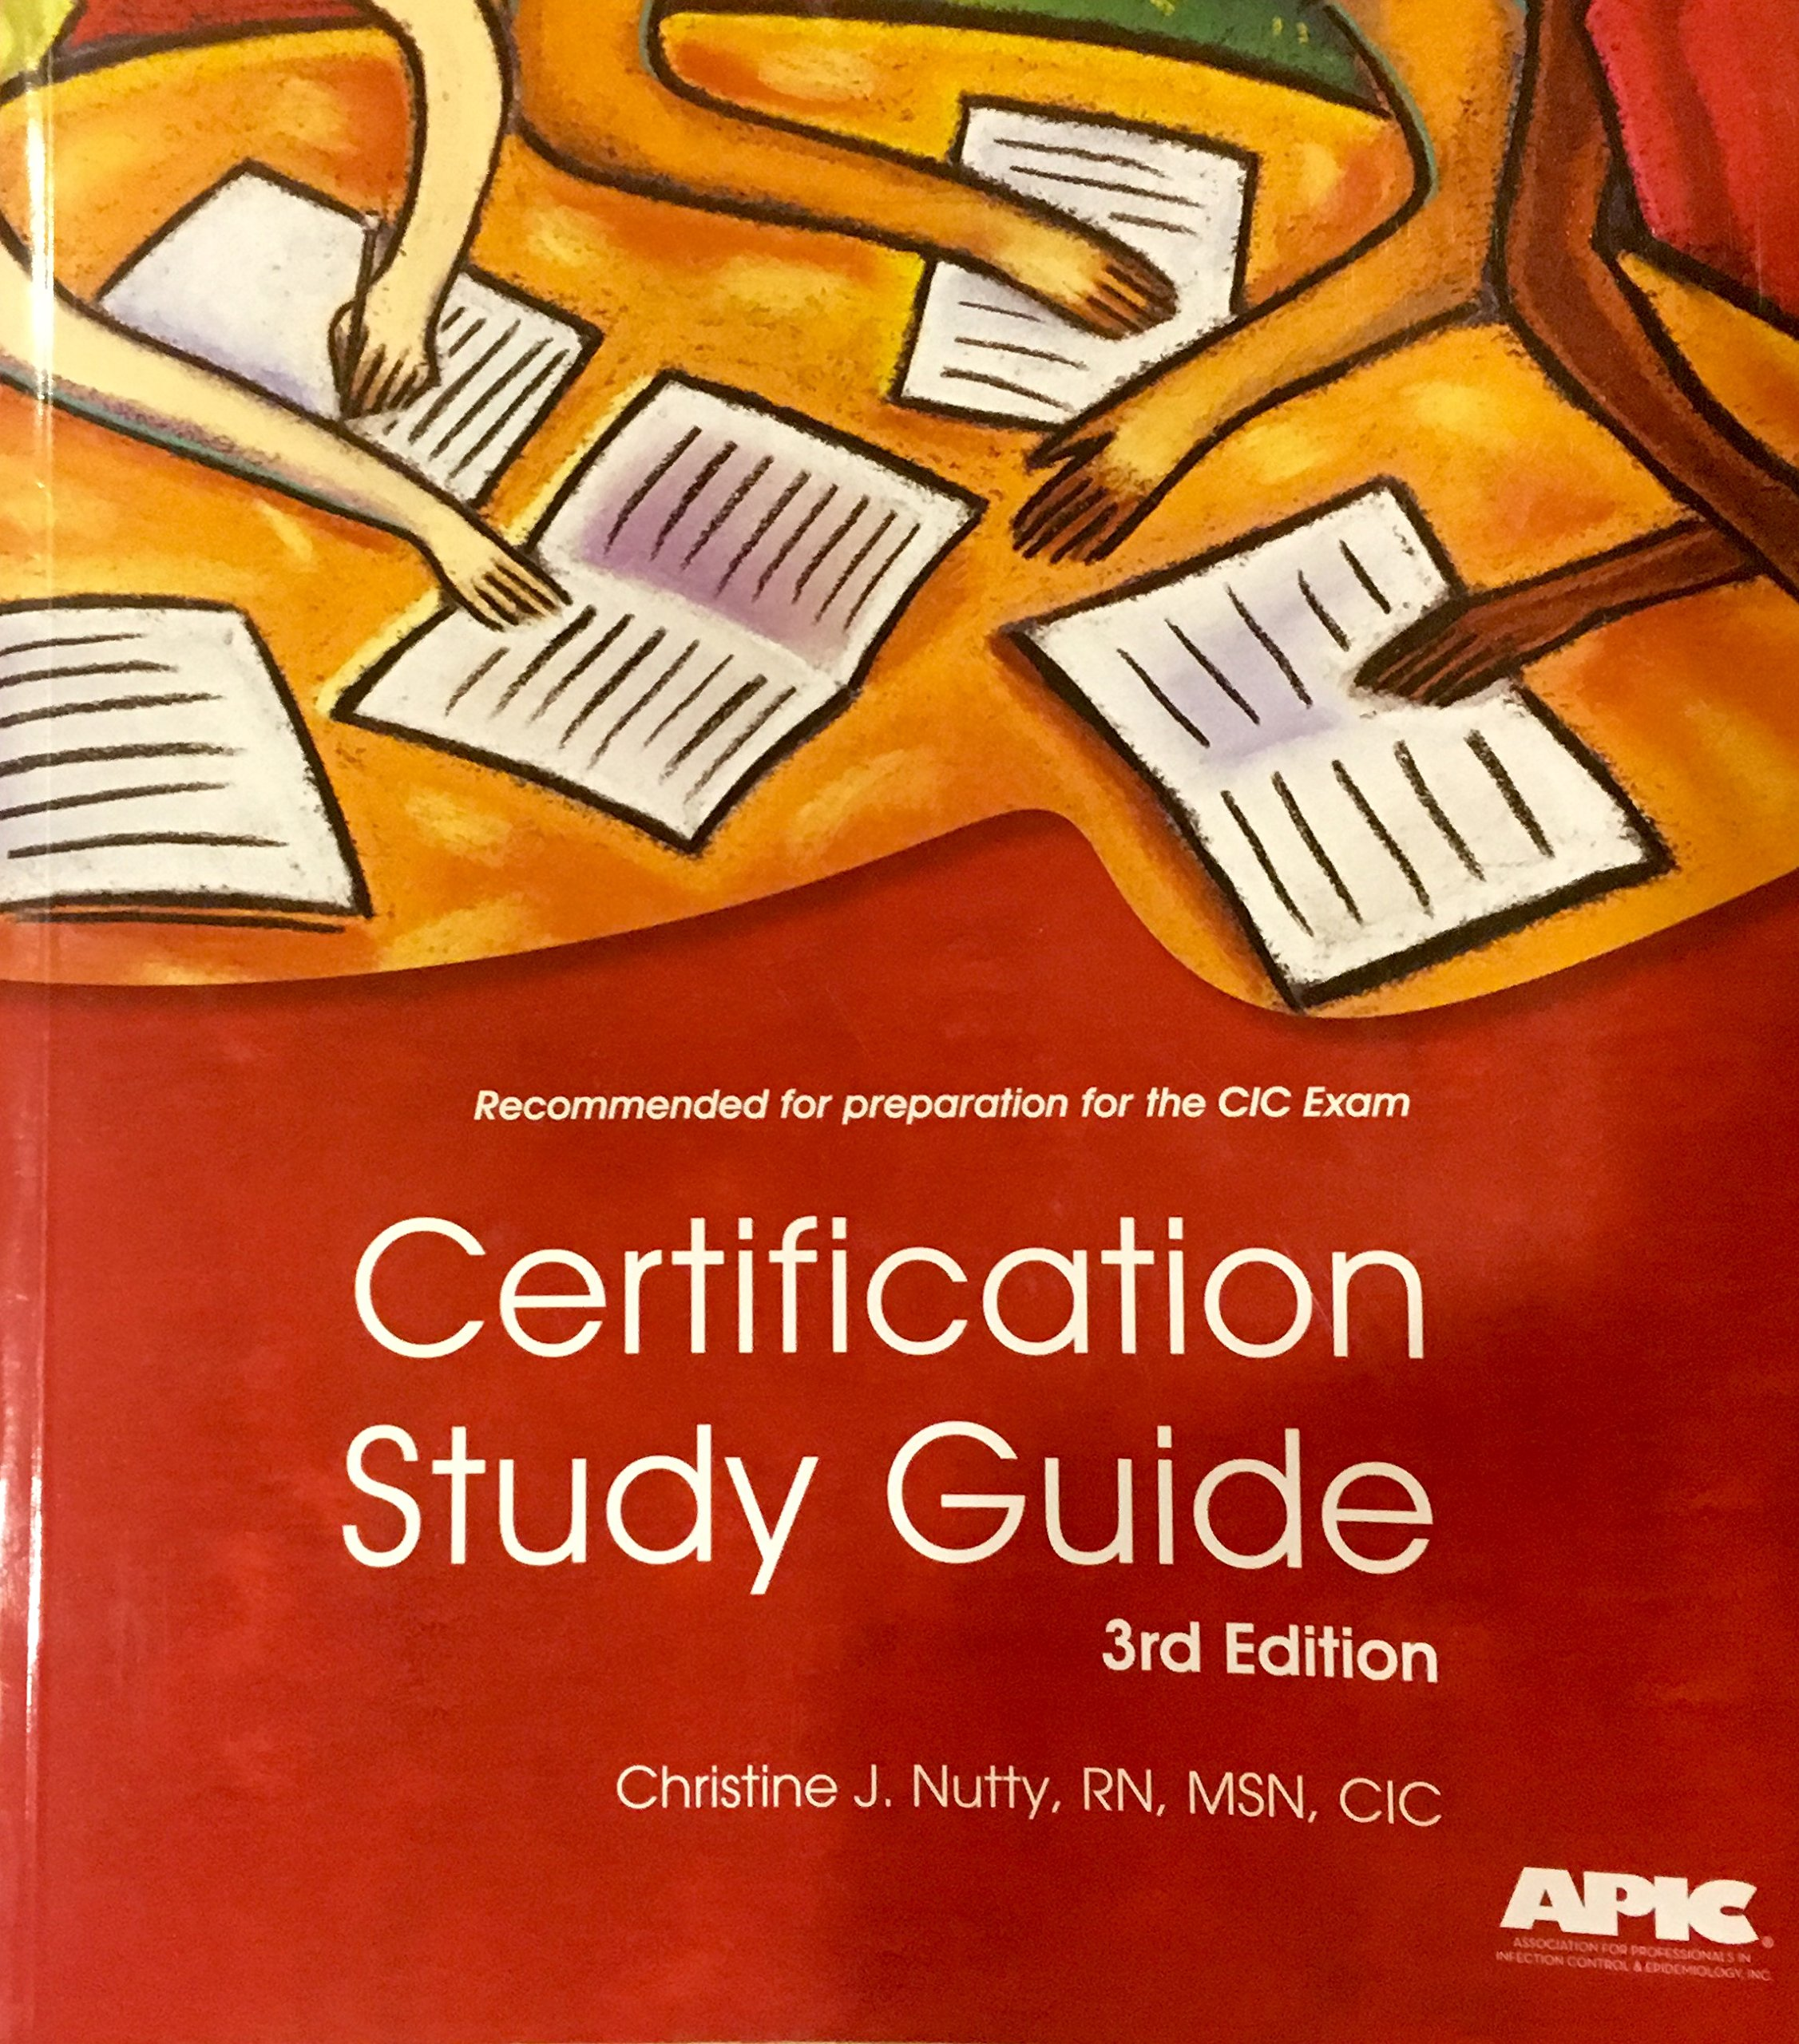 Cic Certification Study Guide Christine Nutty 9781933013251 Books